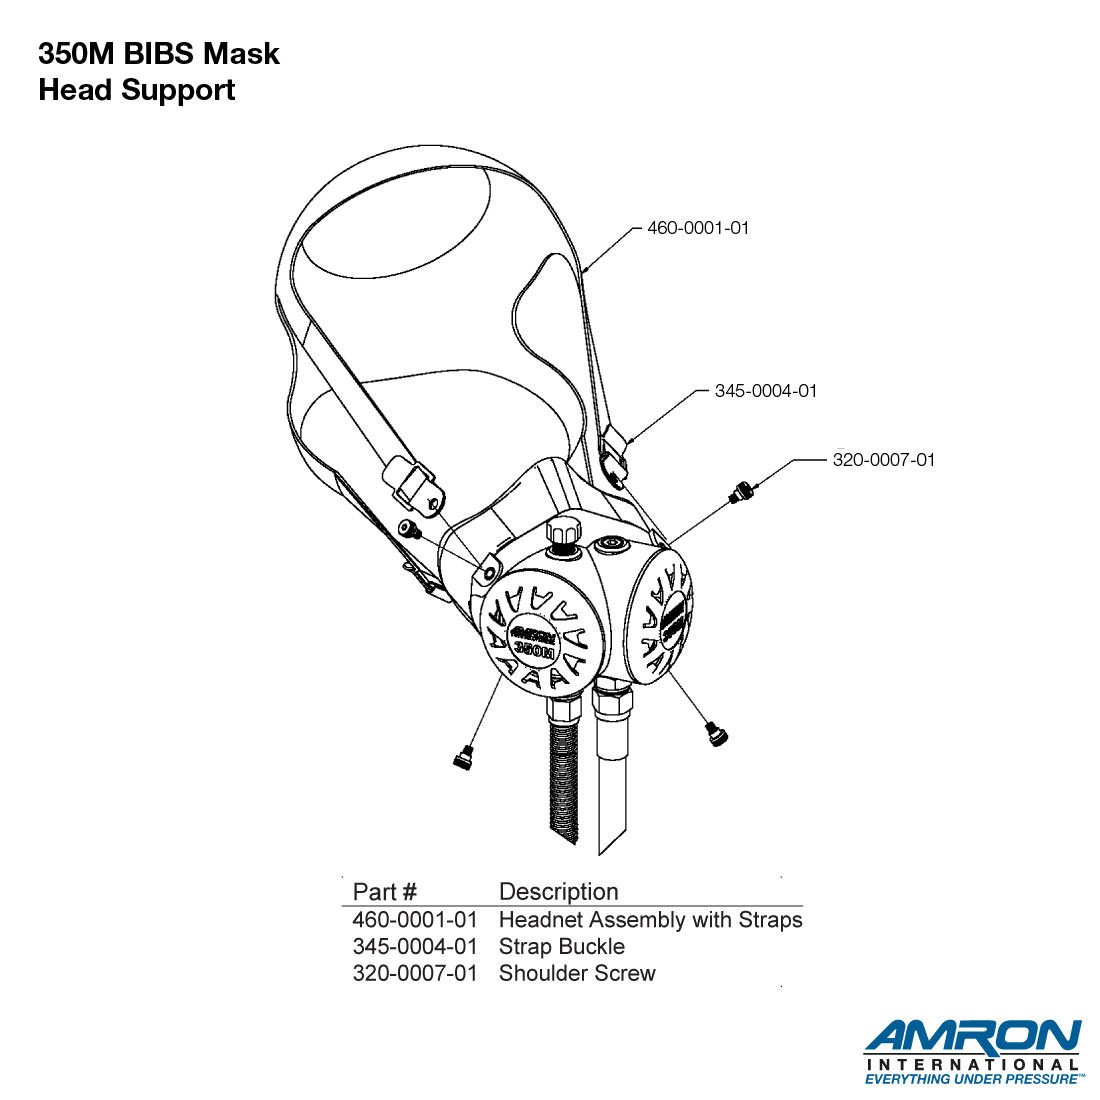 Amron International 350M BIBS Mask - Head Support Breakout